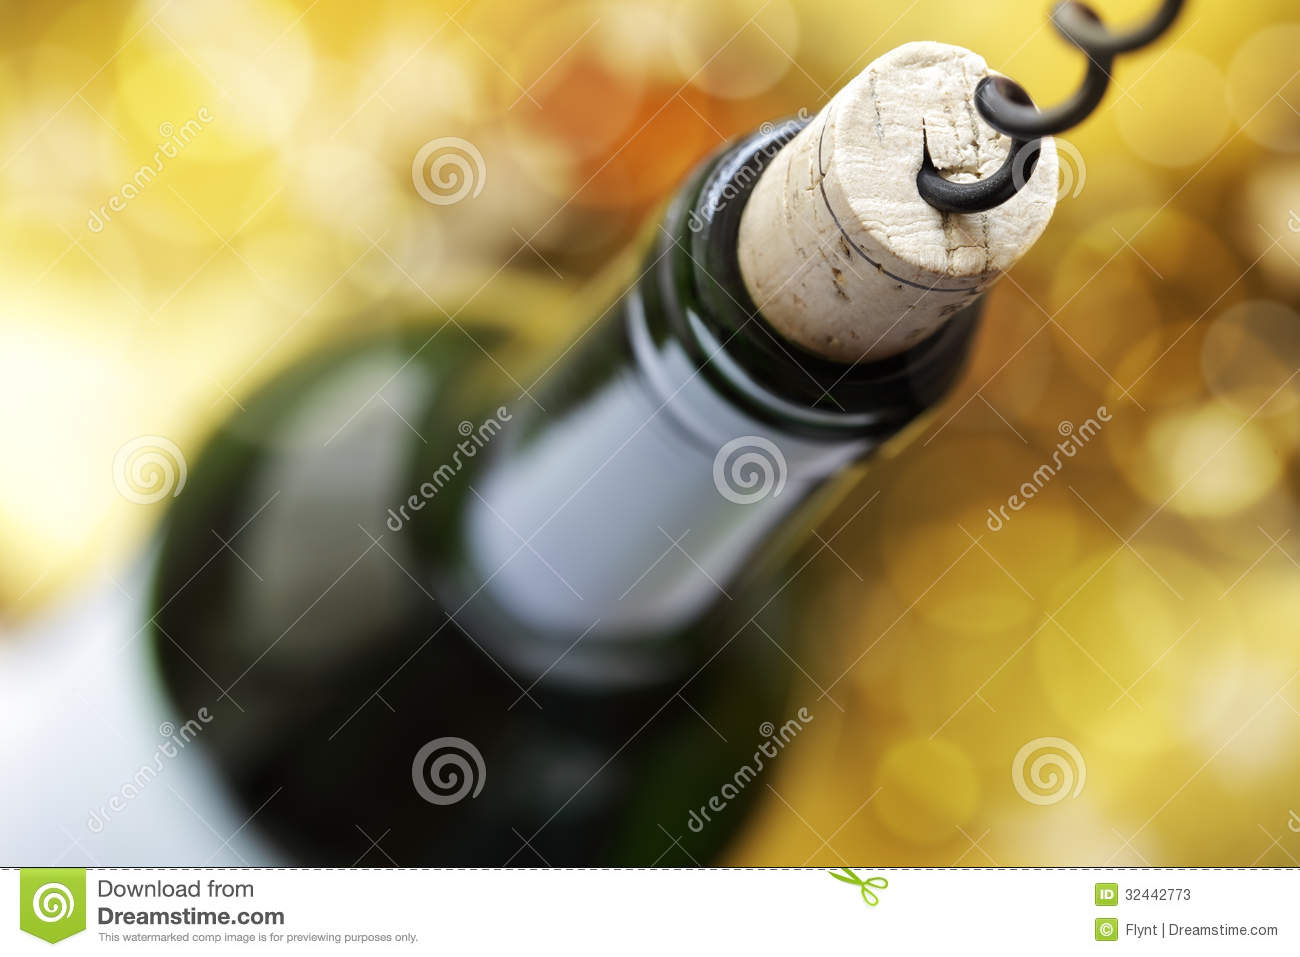 Cork and wine bottle